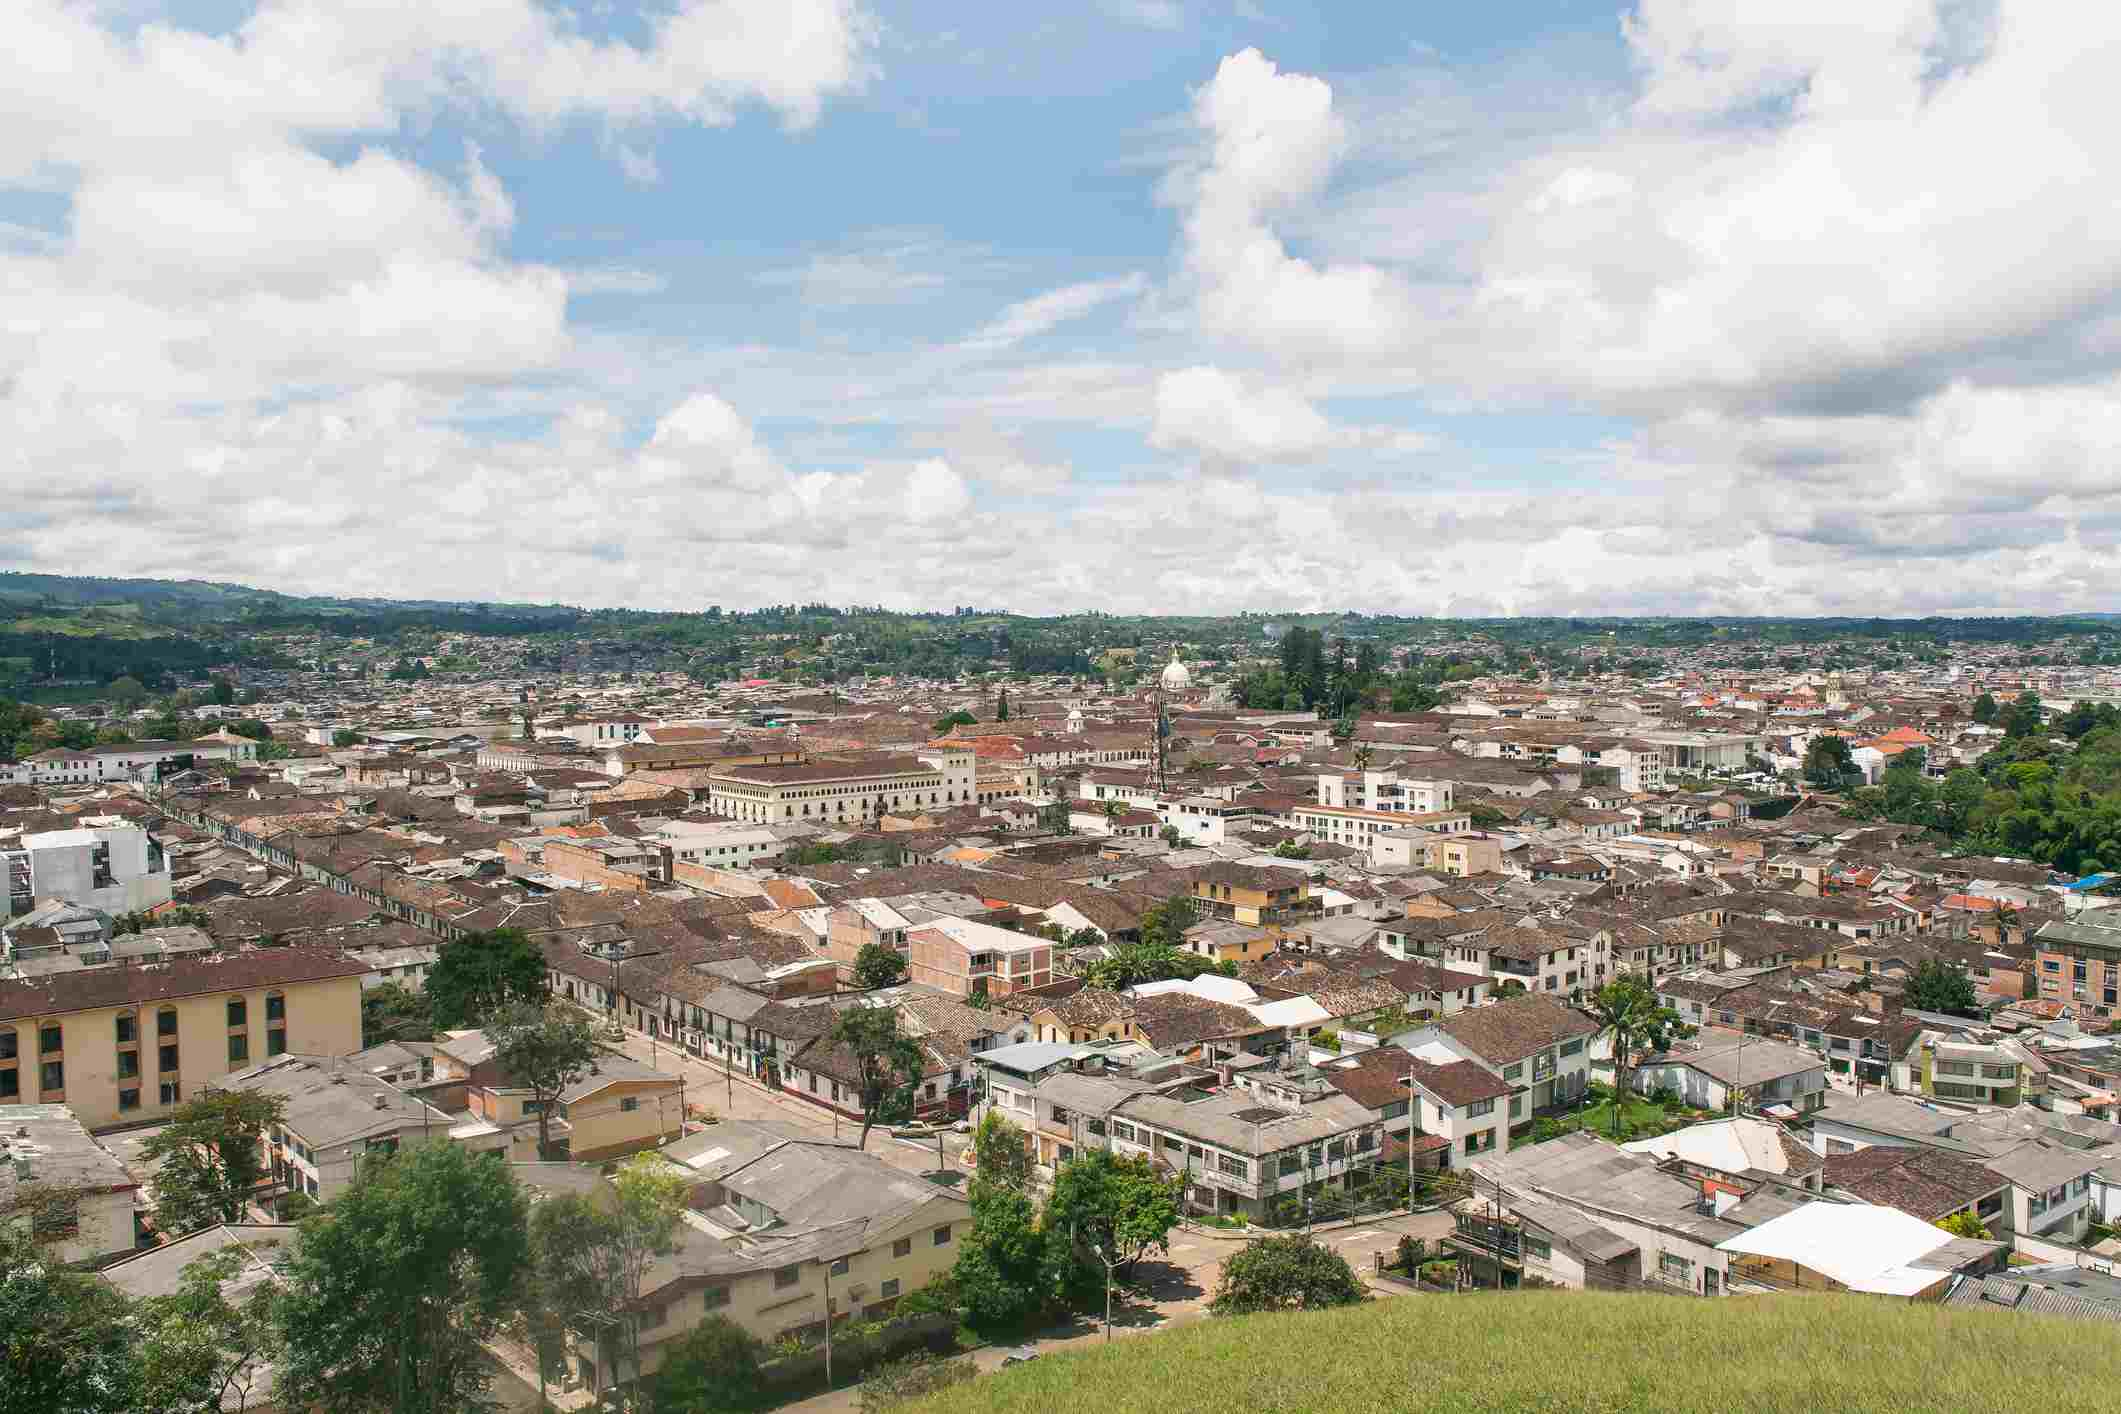 Aerial View of Popayan's Old Town